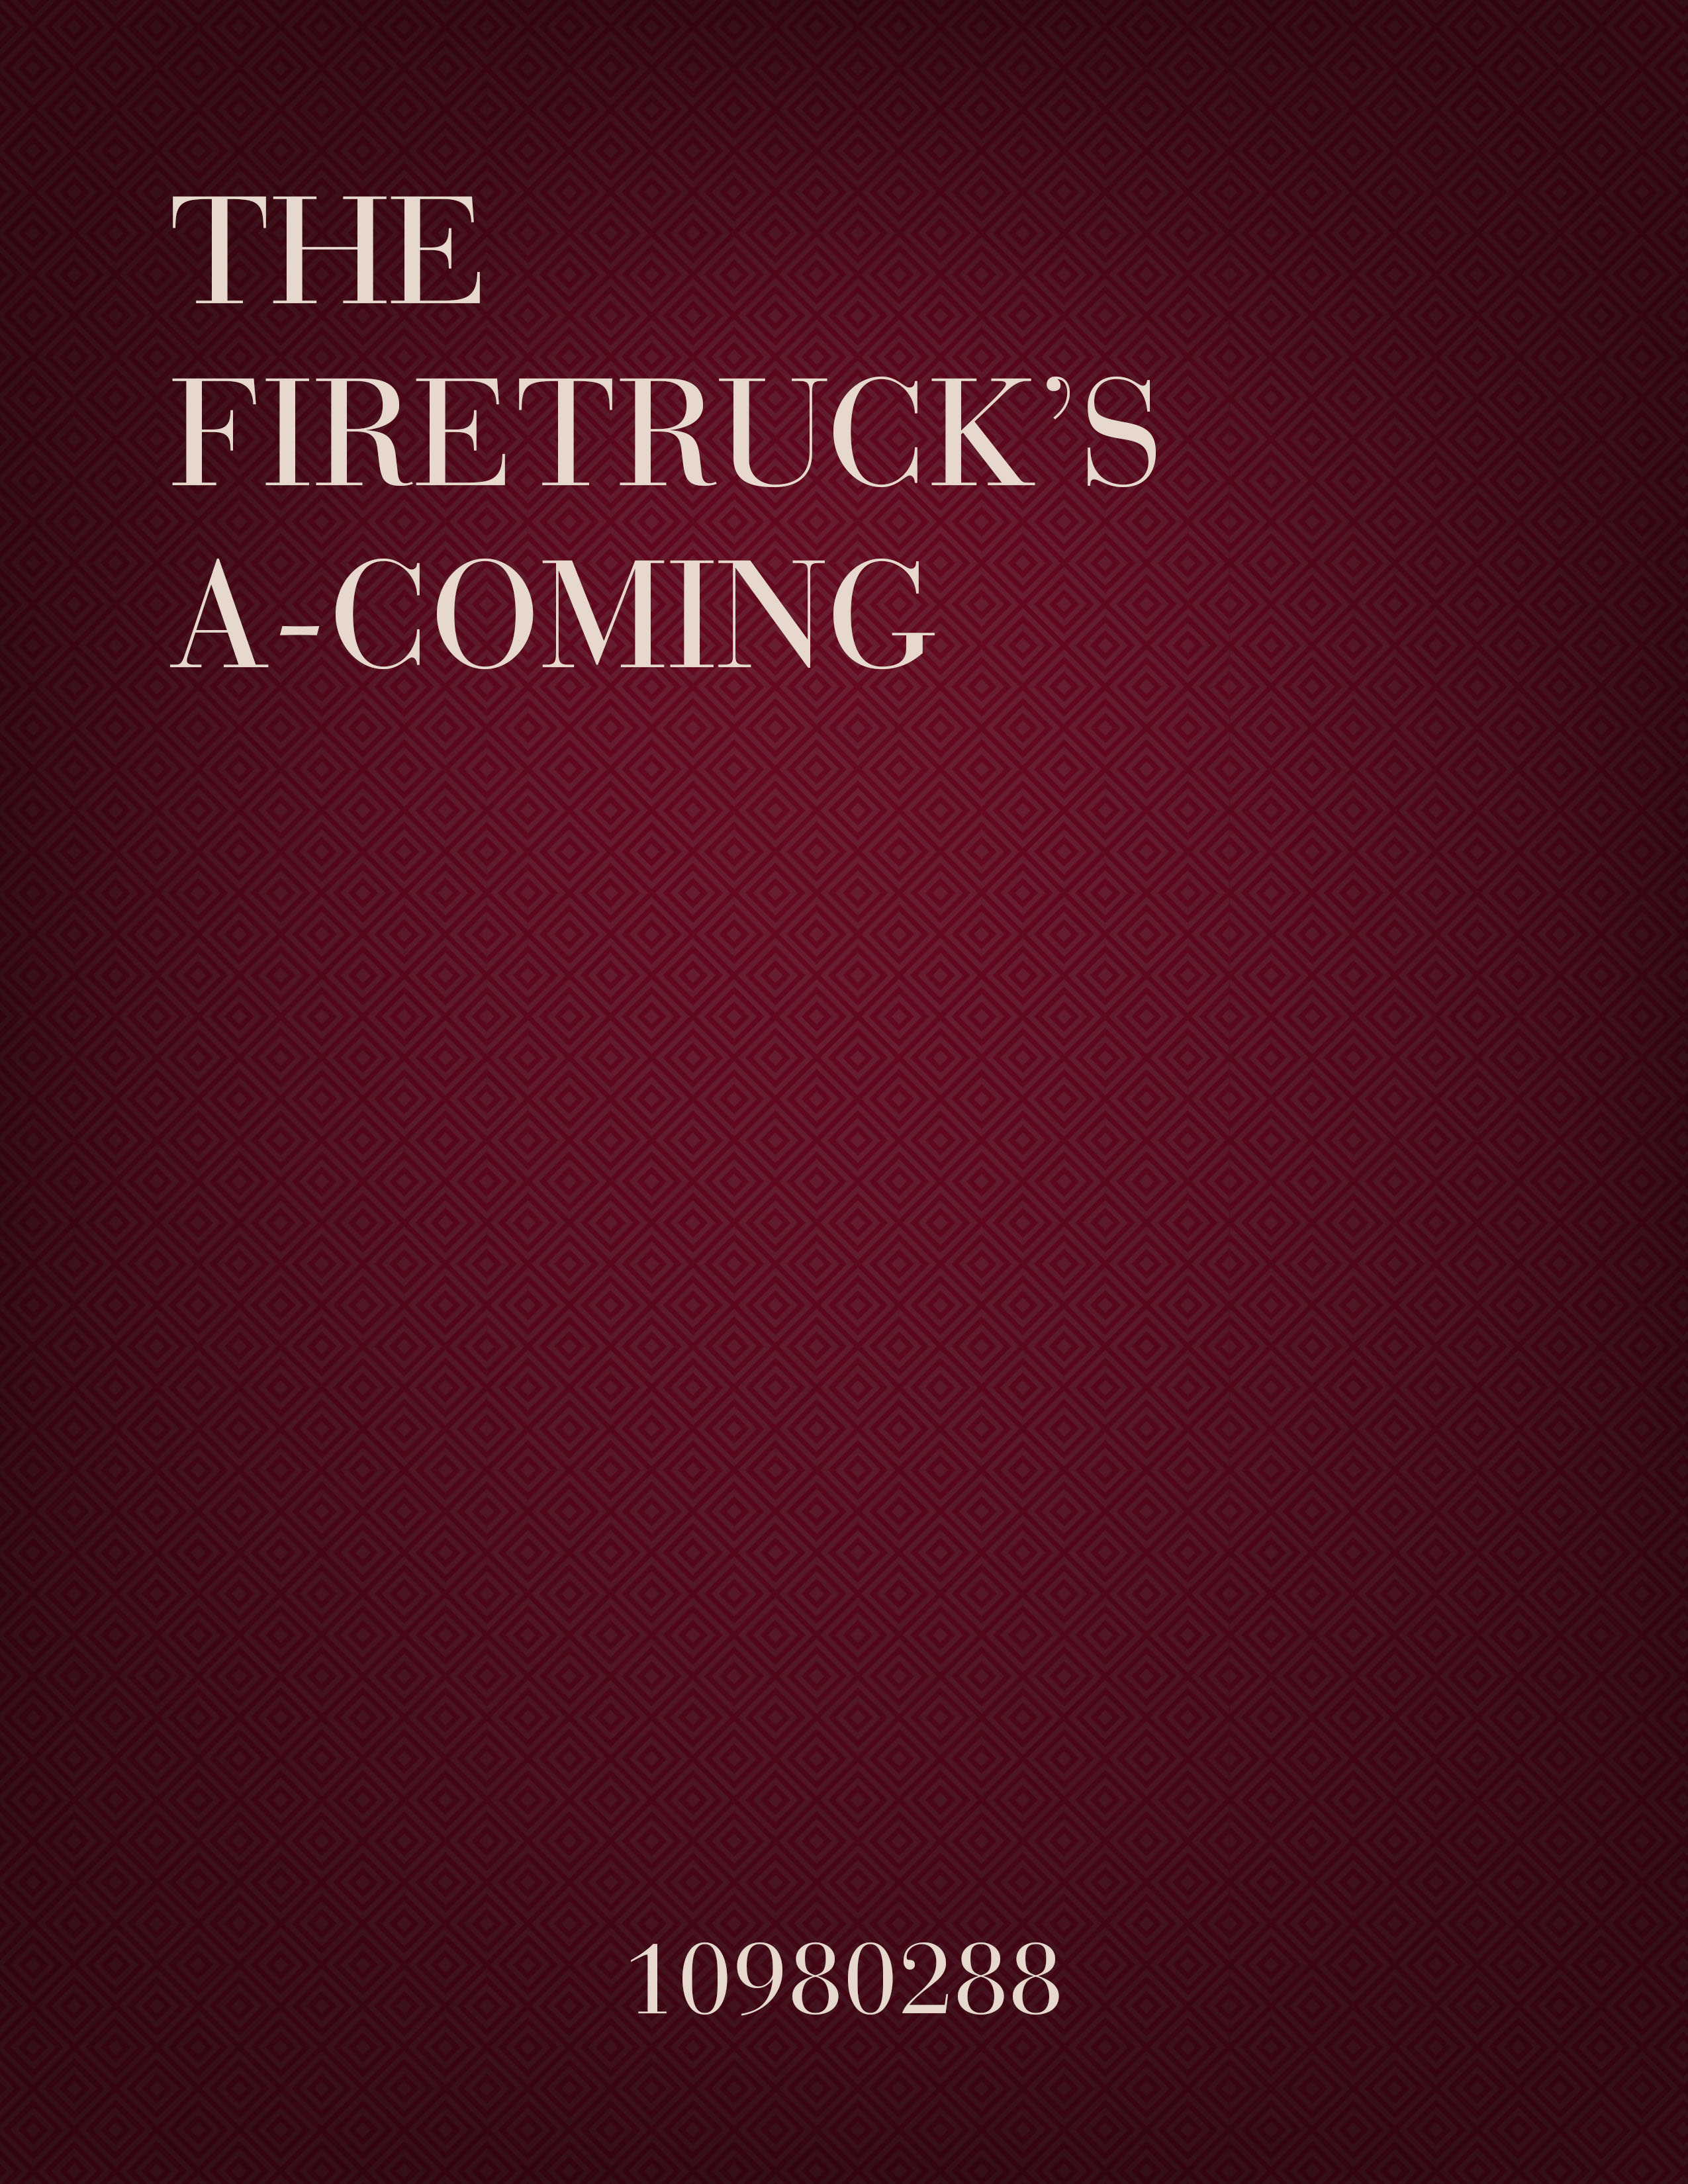 The Firetruck's A-Coming!